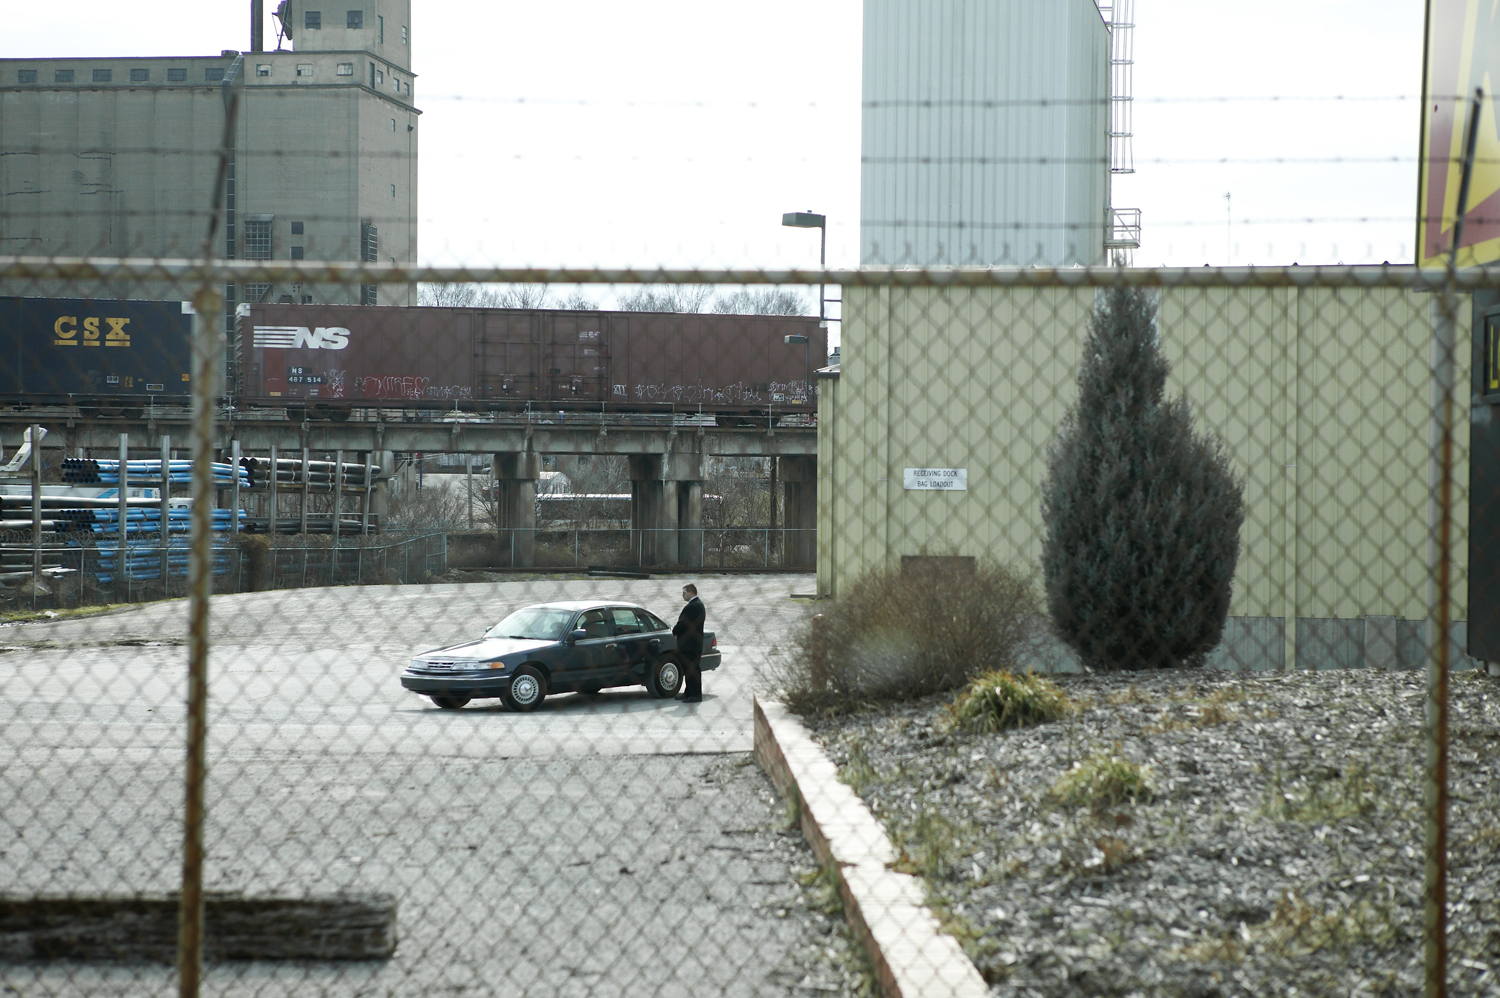 Feb. 26, 2004. A Secret Service agent stands by a car in Louisville, Ky.